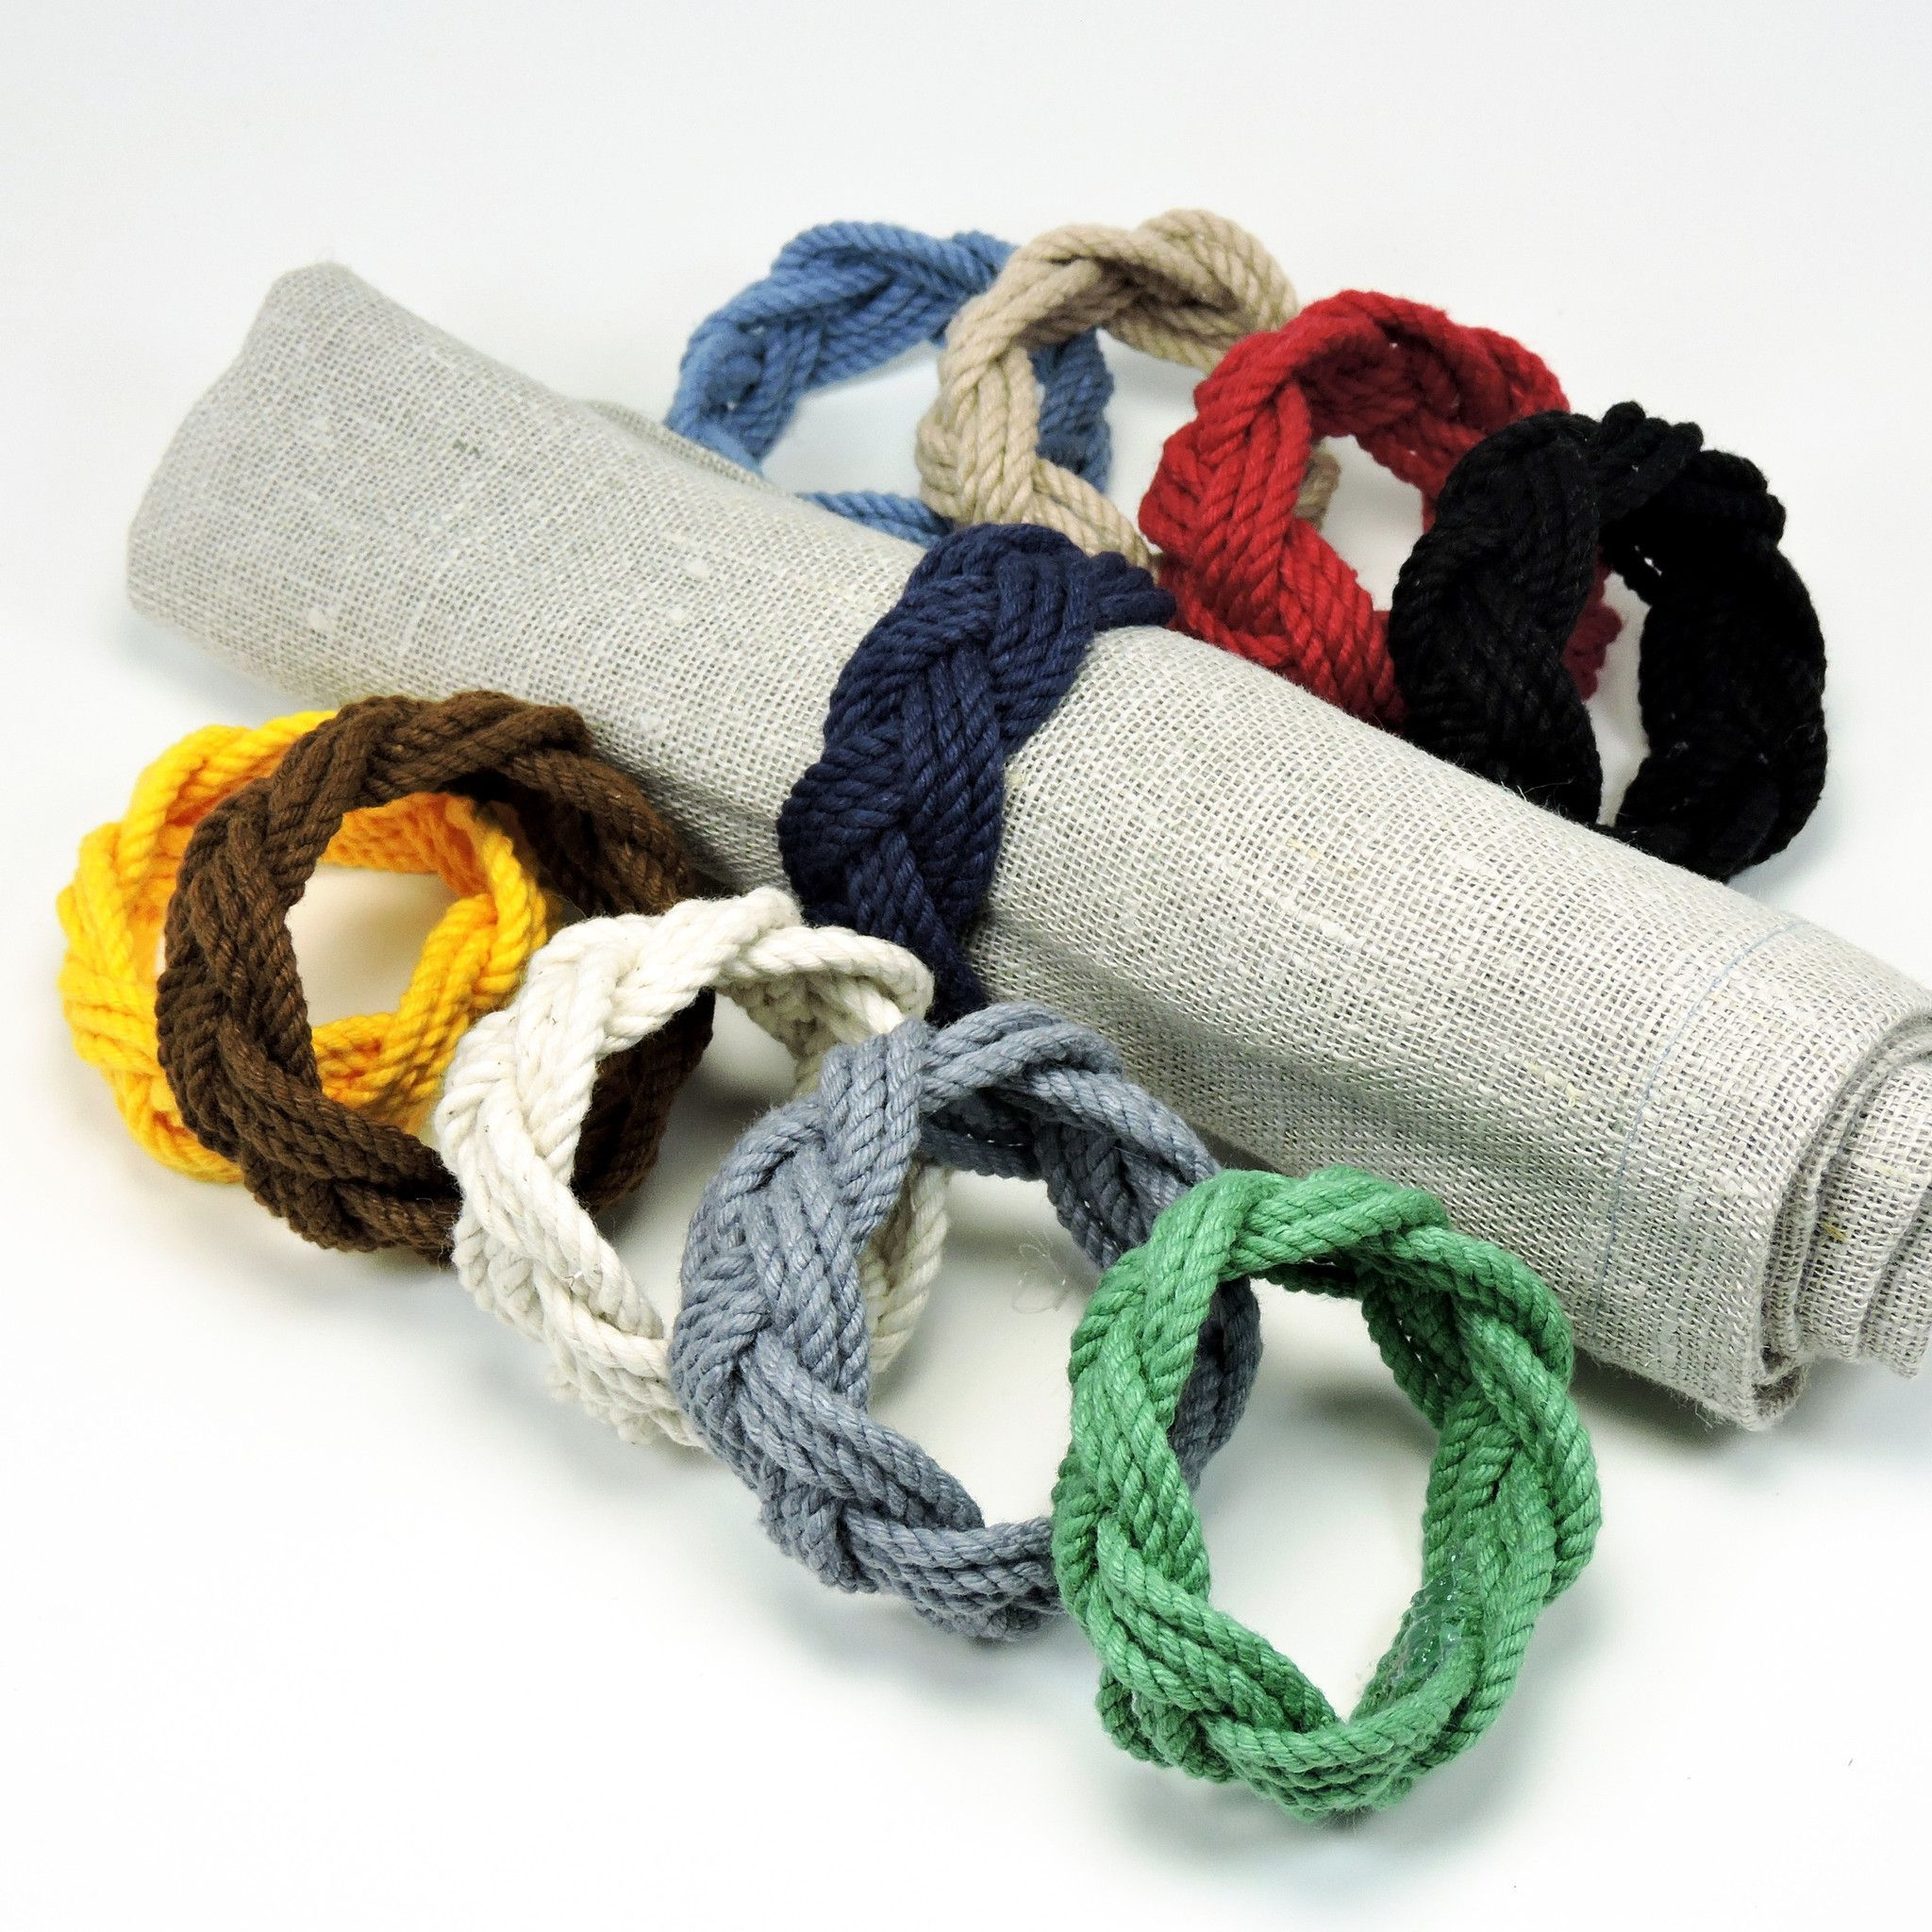 Sailor Knot Napkin Rings Set of Four Woven Turkshead in Cotton